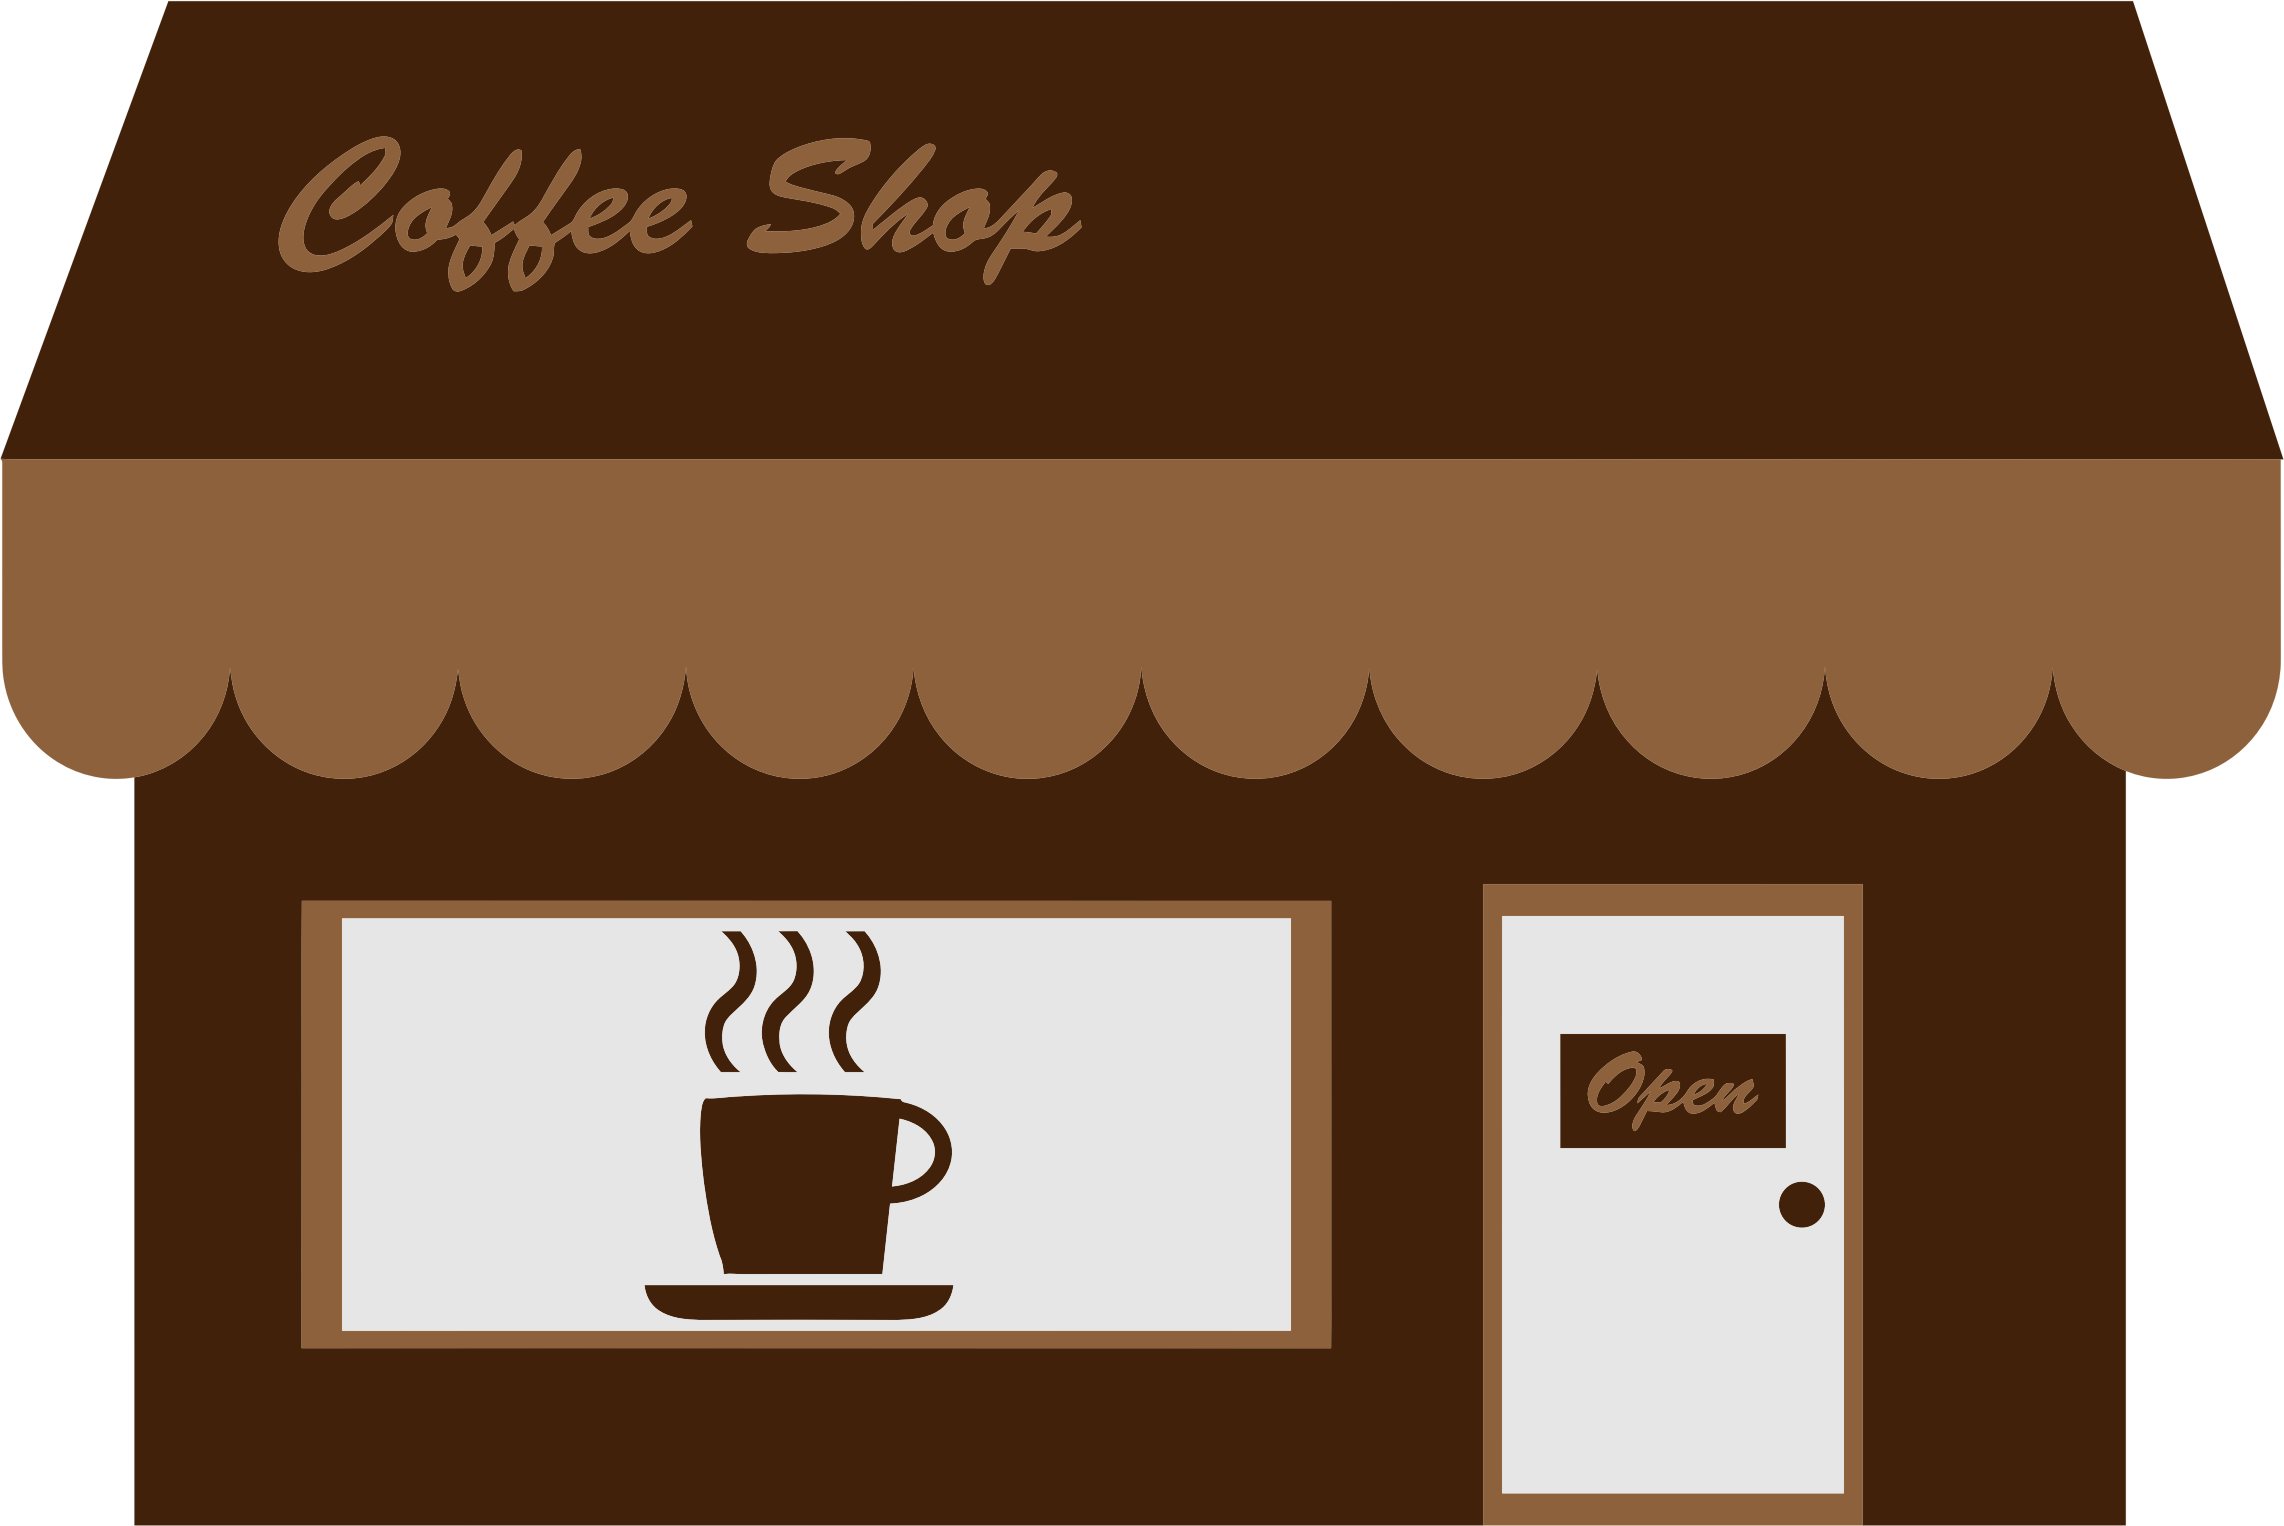 Clipart Coffee Shop Storefront Coffee shop, Starting a